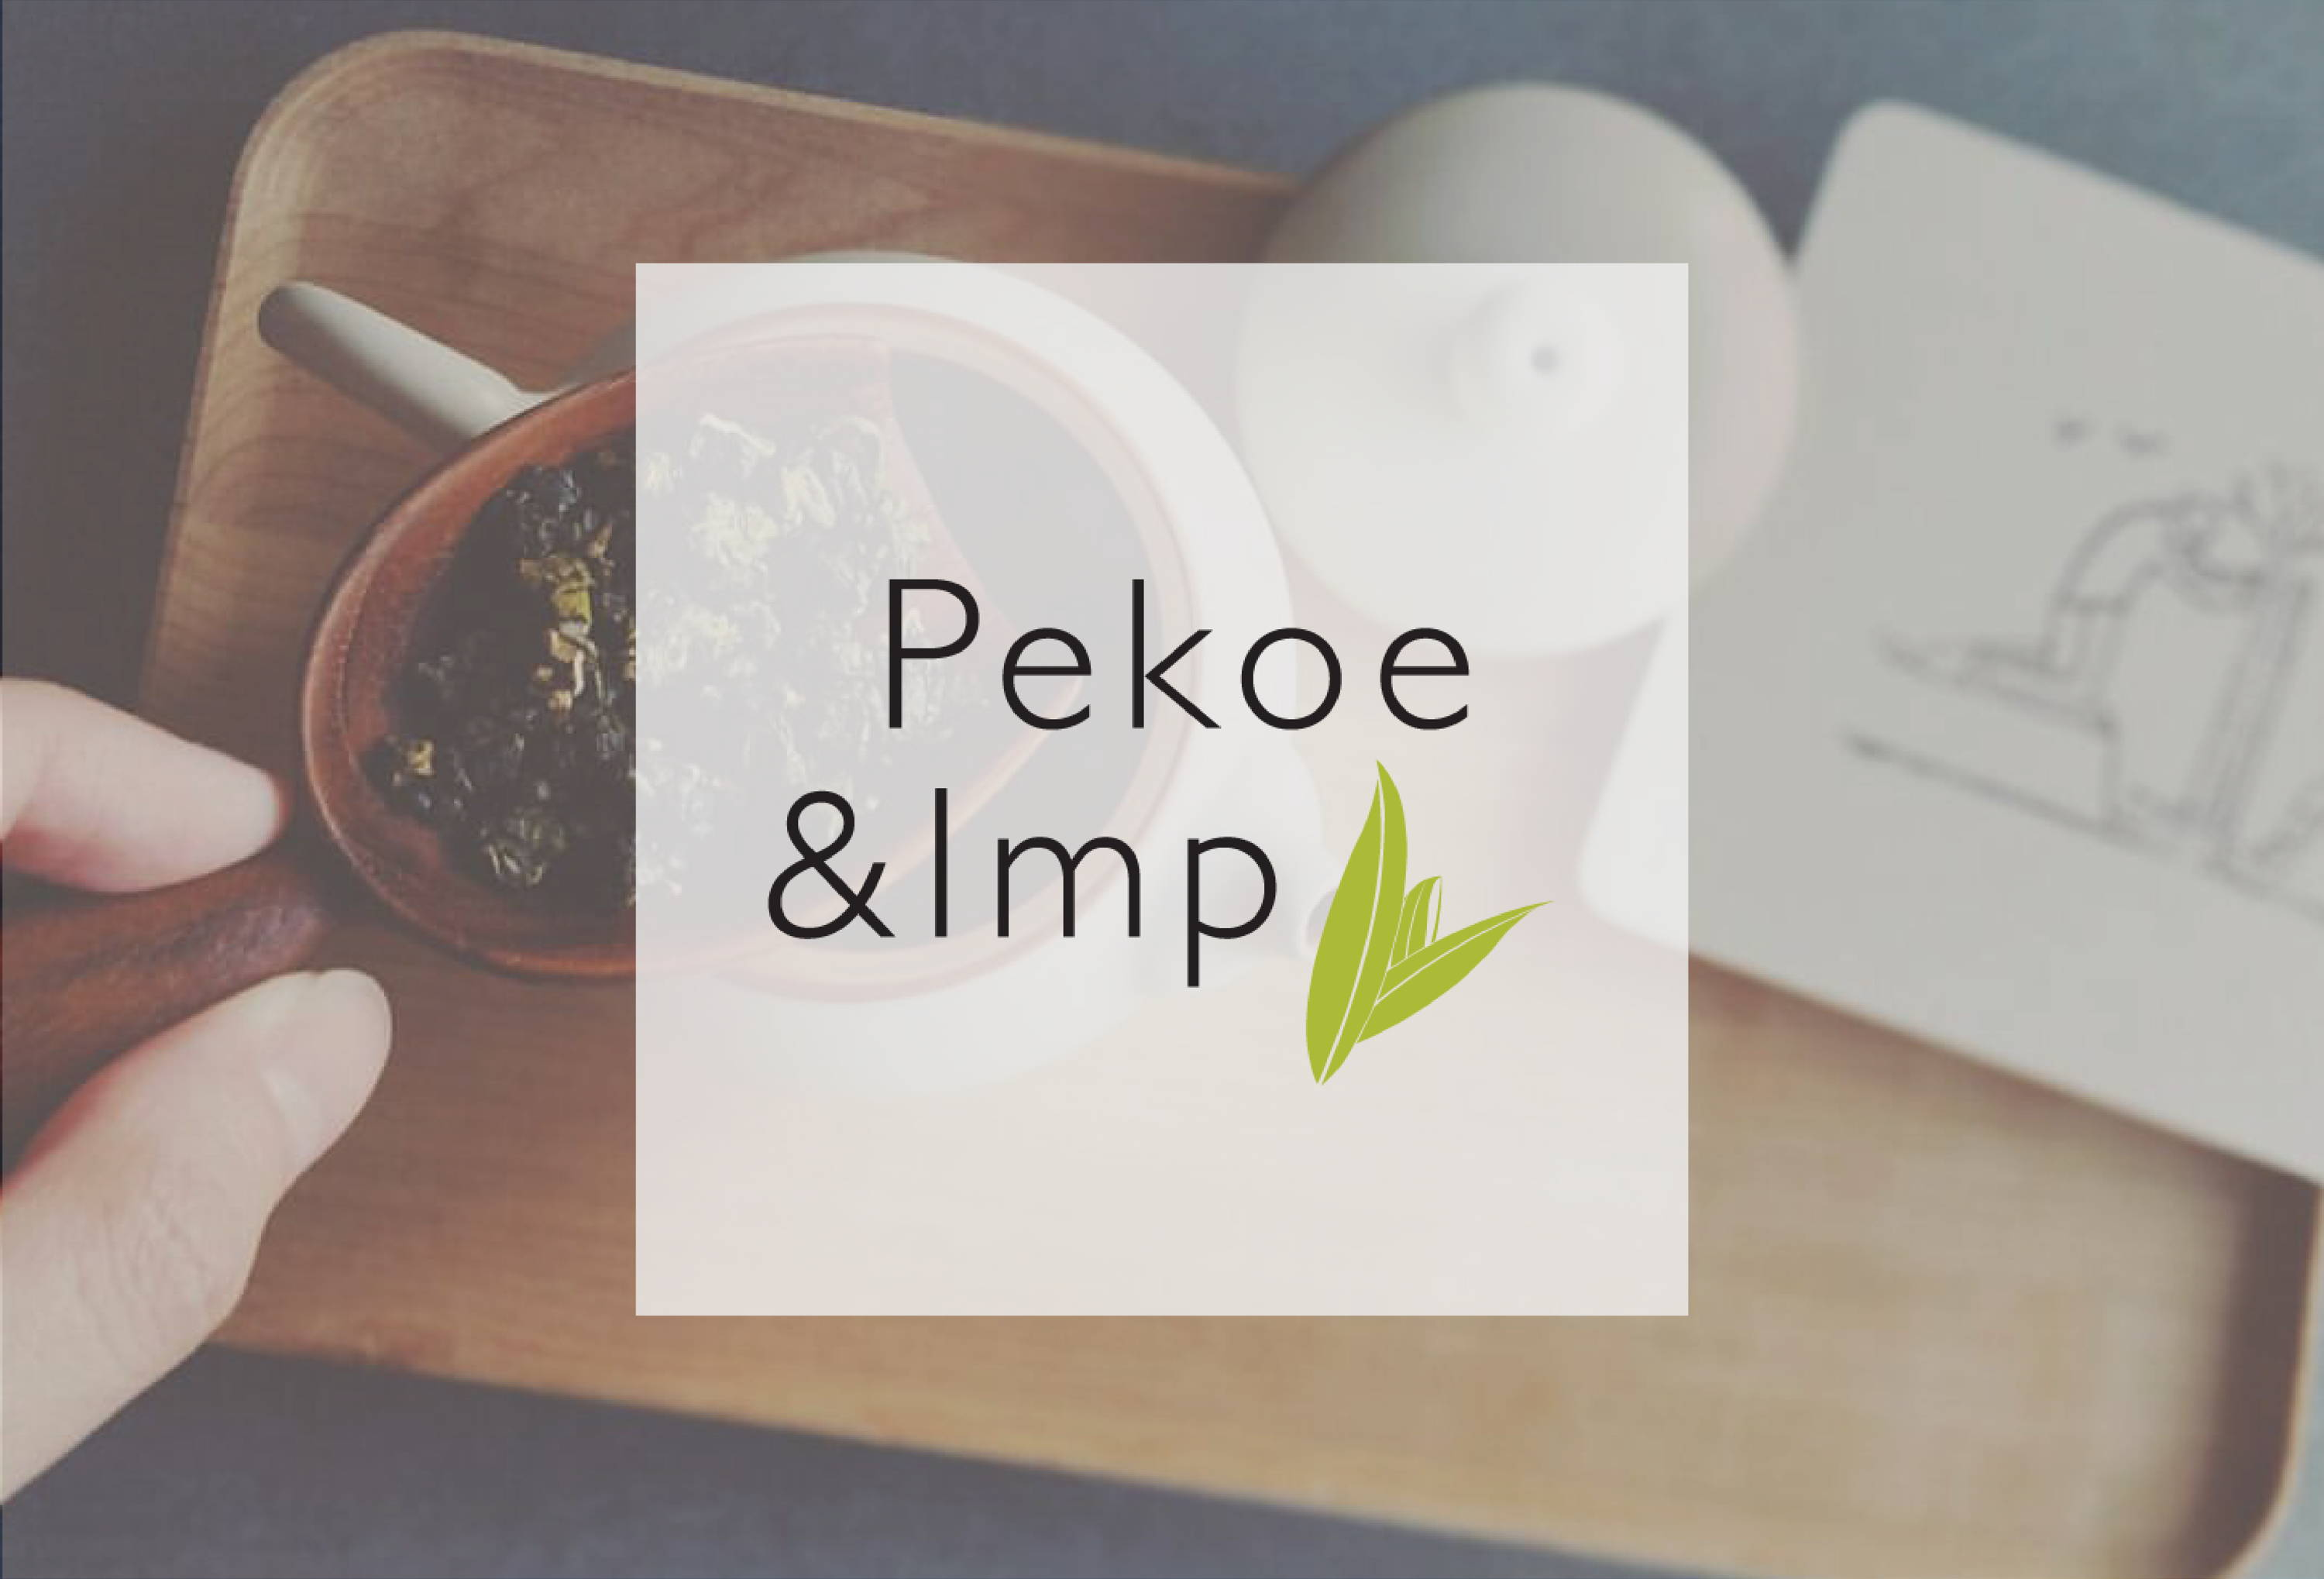 Pekoe and Imp at Singapore Tea Festival 2018